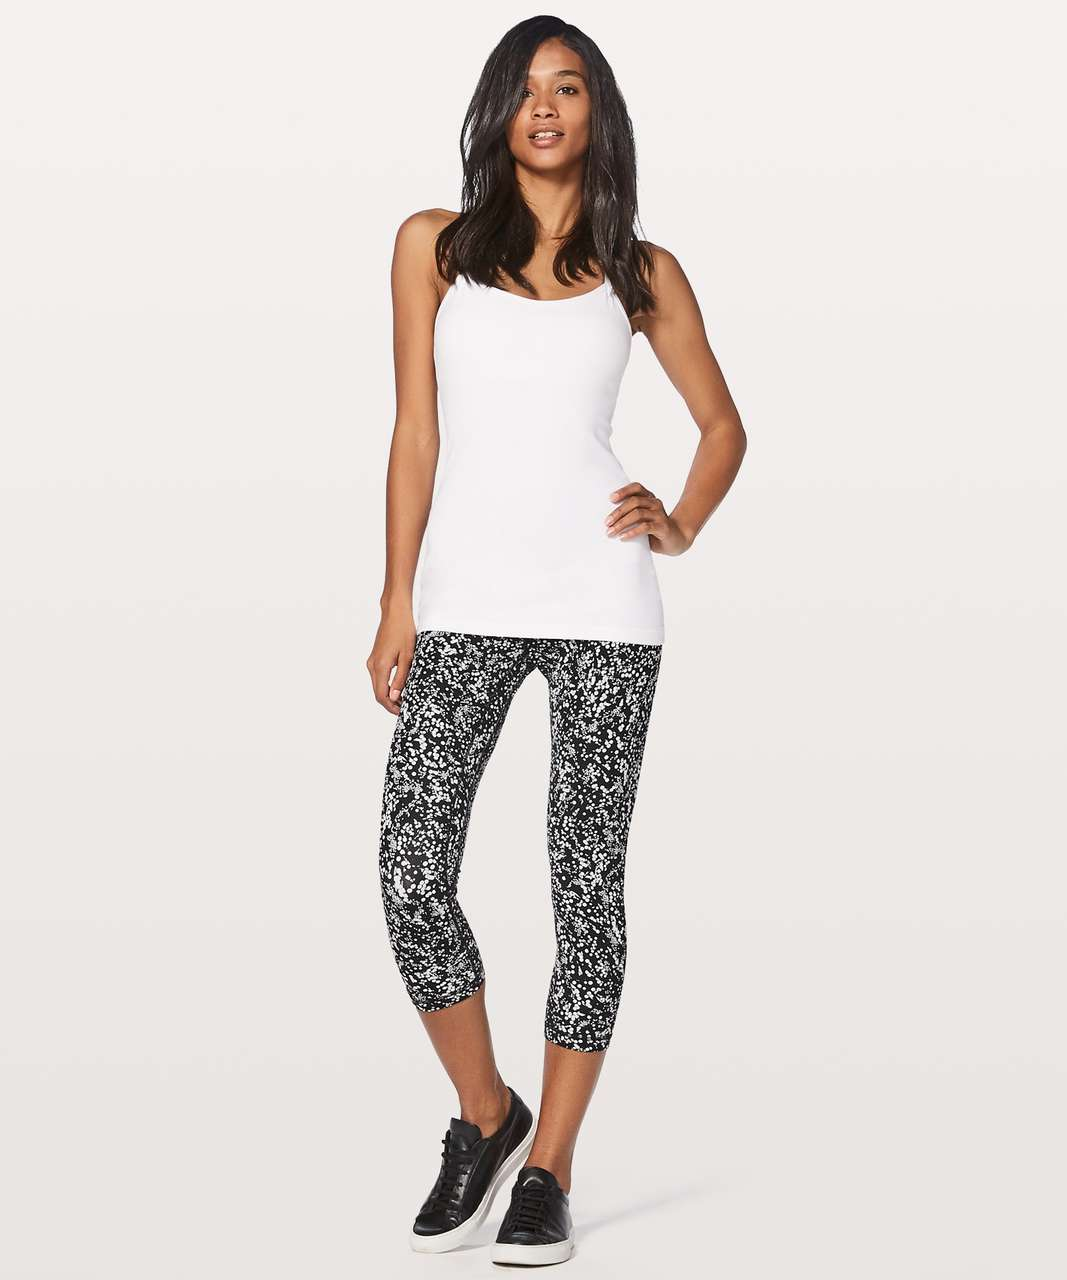 Lululemon Power Y Tank *Luon - White (First Release)